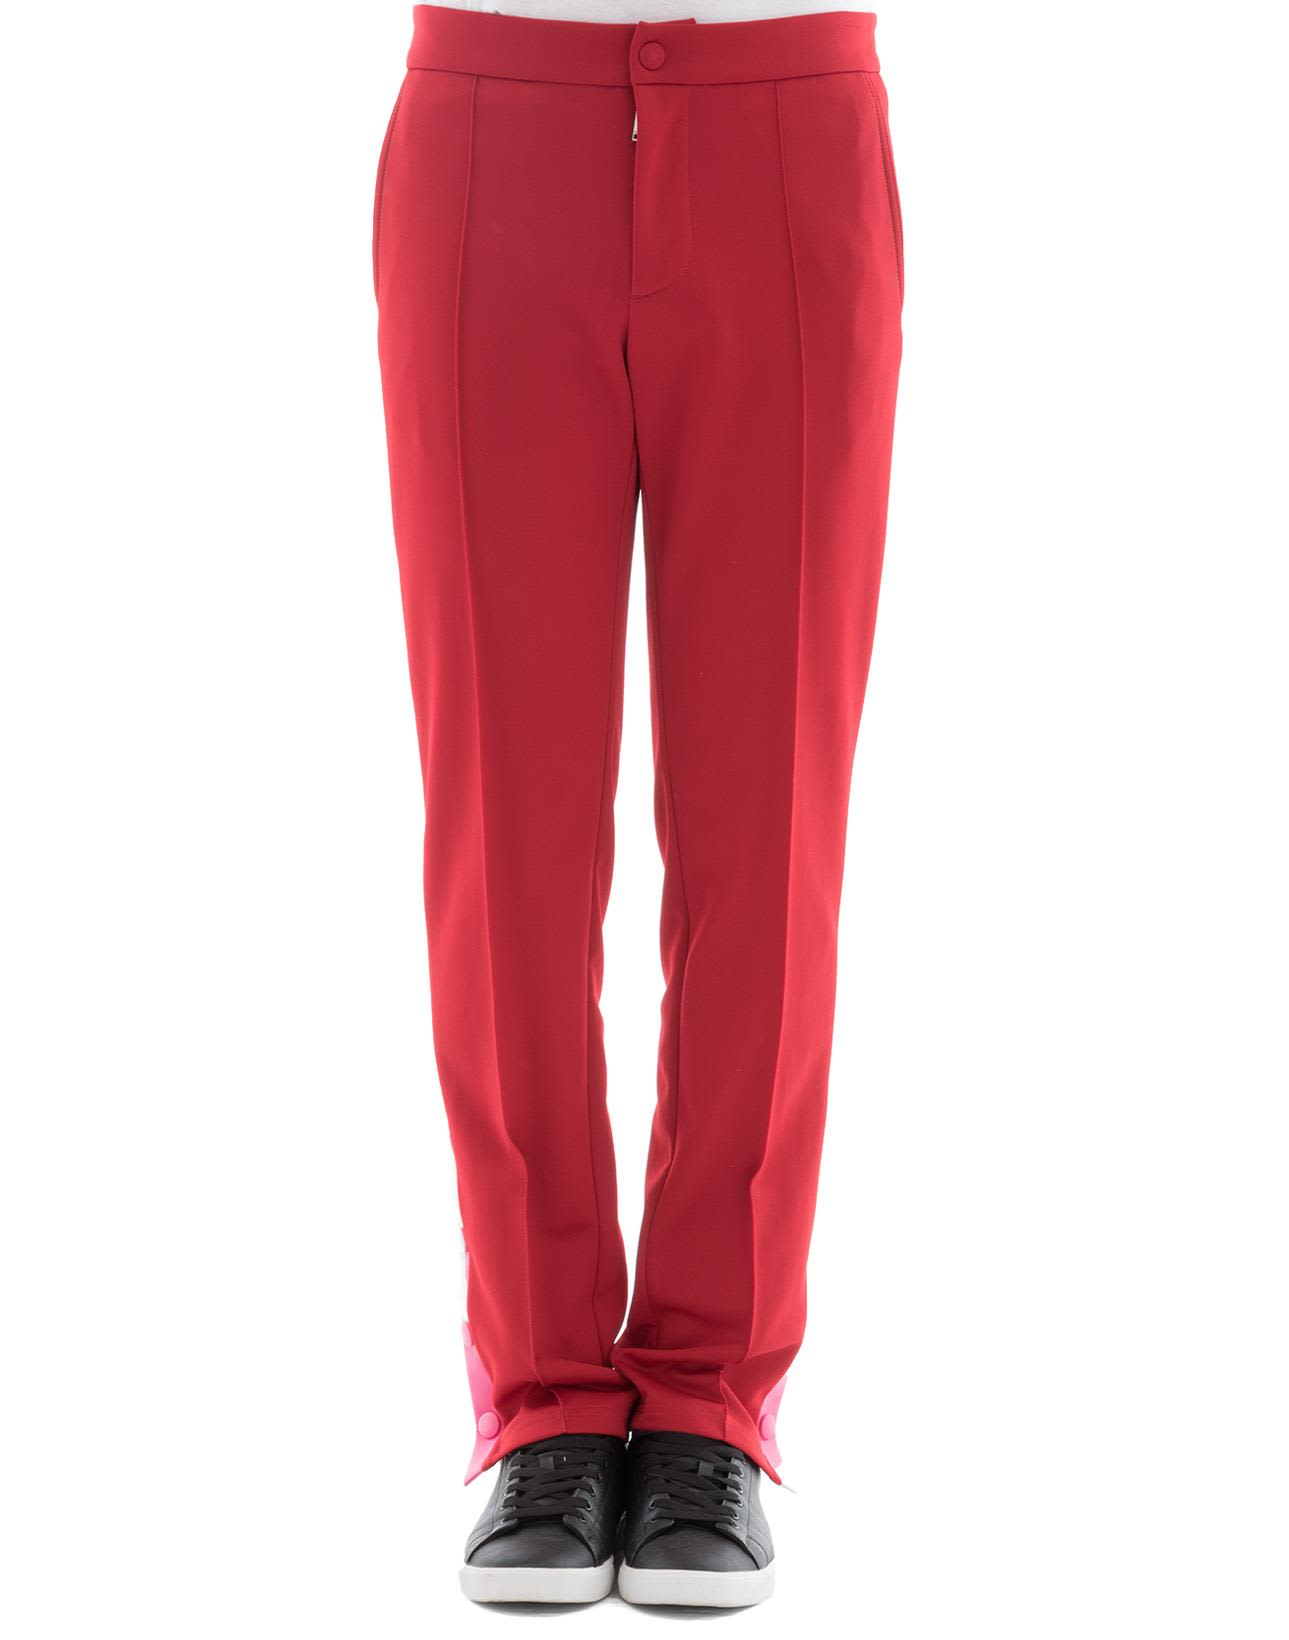 Red Polyester Pants